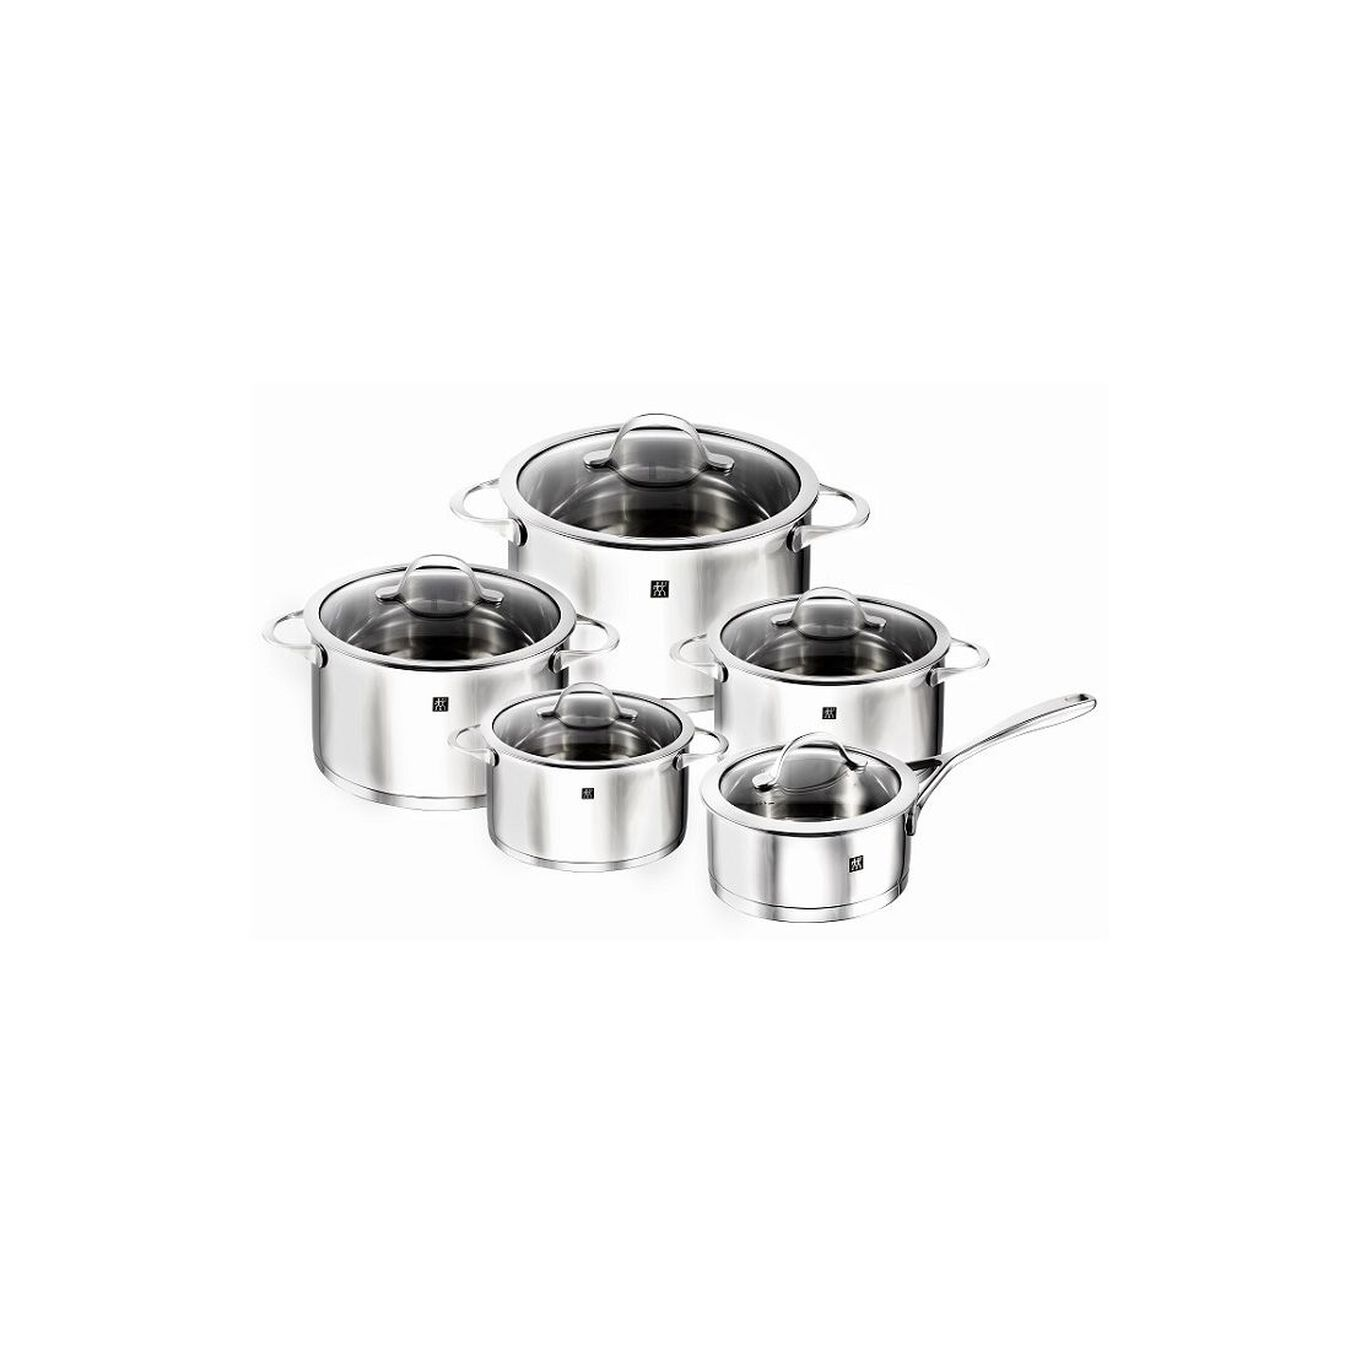 Pot set, 10 Piece   round   18/10 Stainless Steel,,large 5